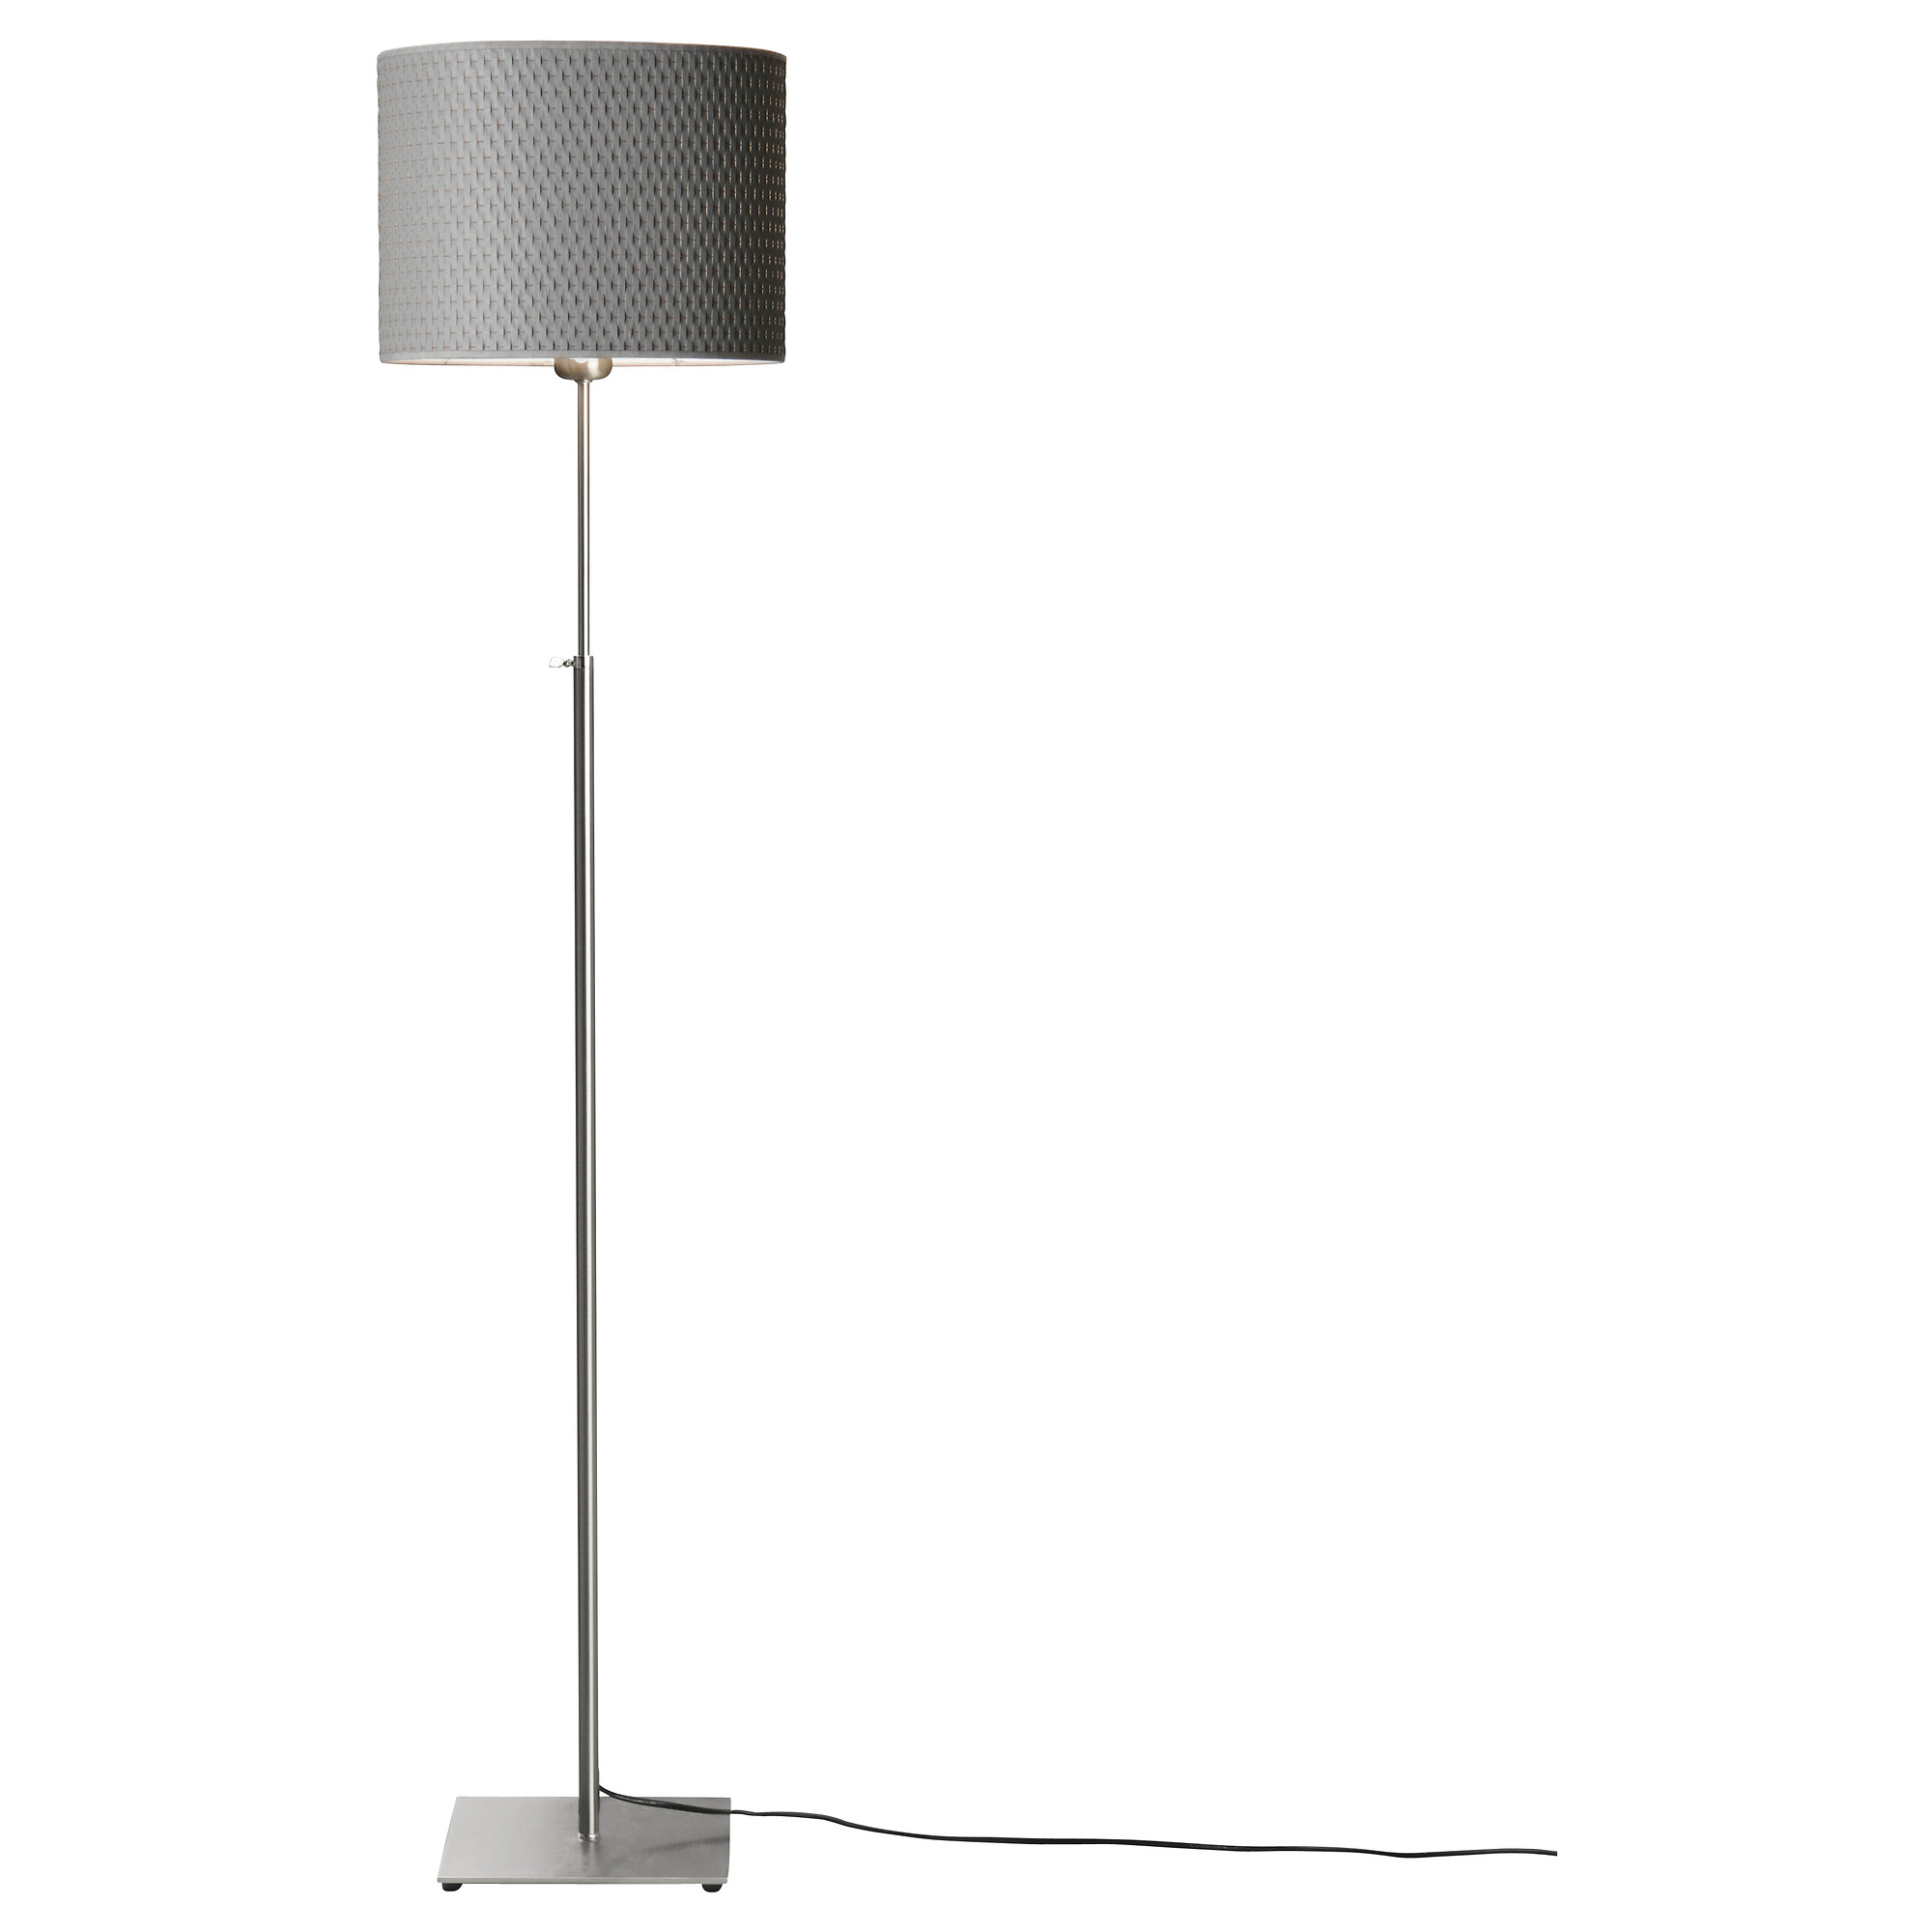 Interior 58 tall lamps, tall lamps collection for home decor current styles with wyduegt